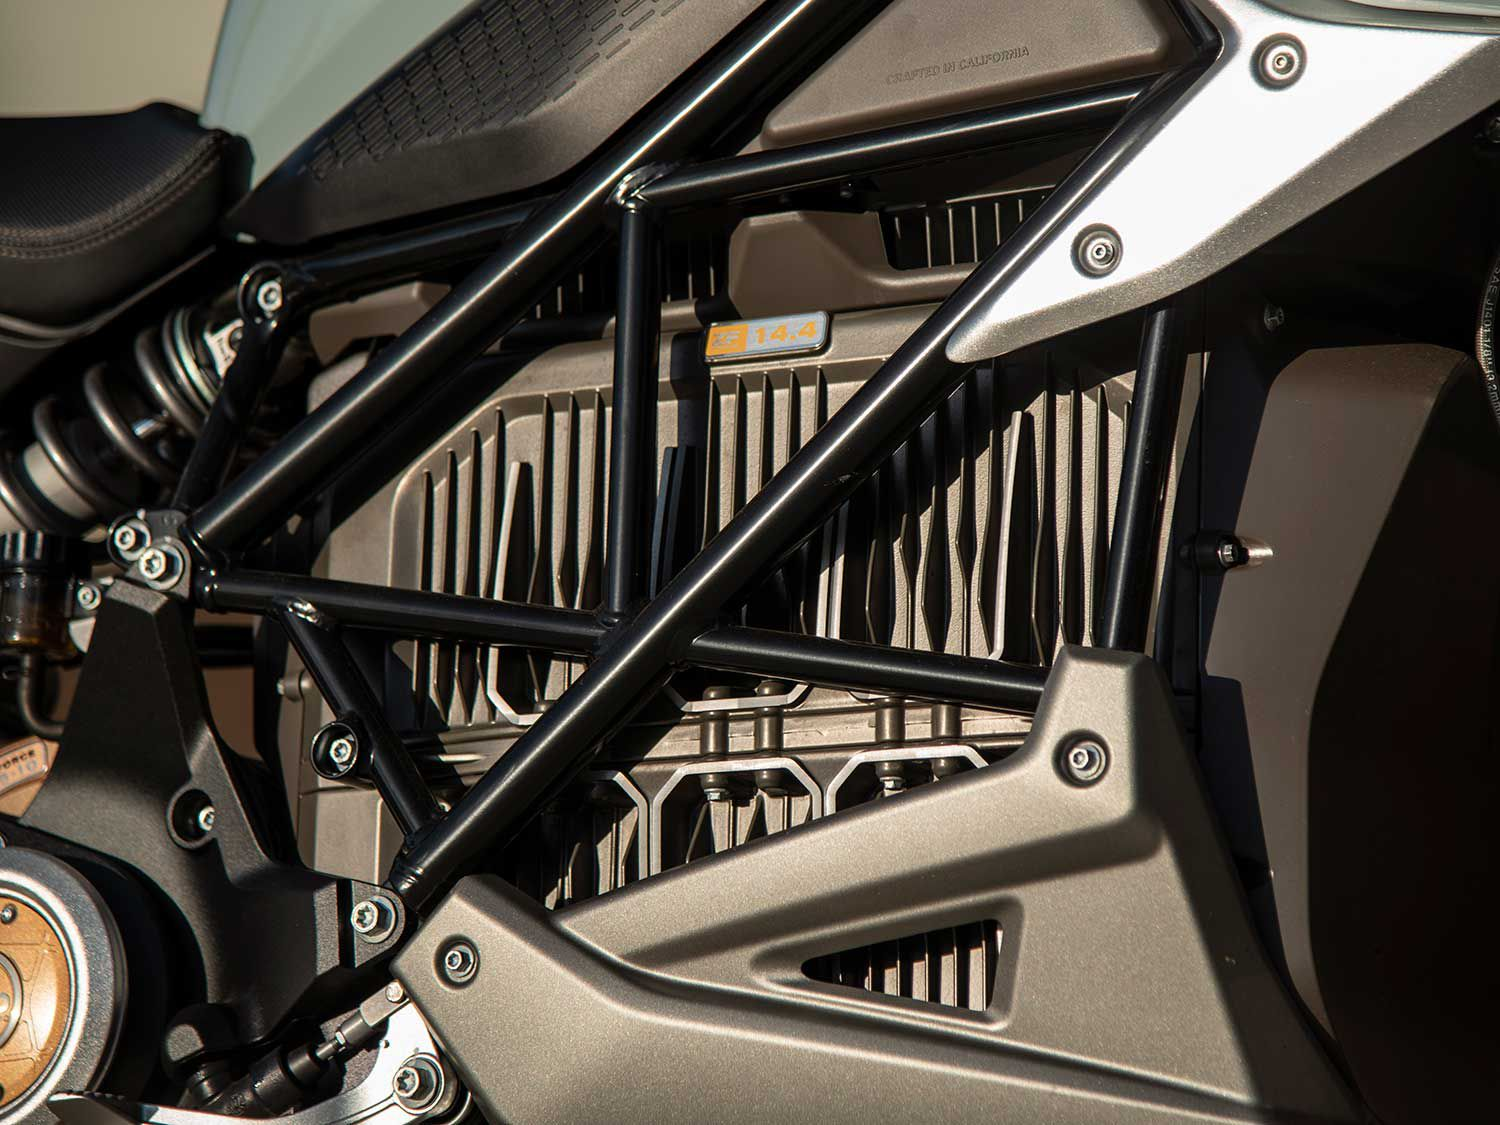 The 14.4 kWh lithium-ion battery pack hides behind a steel trellis frame.